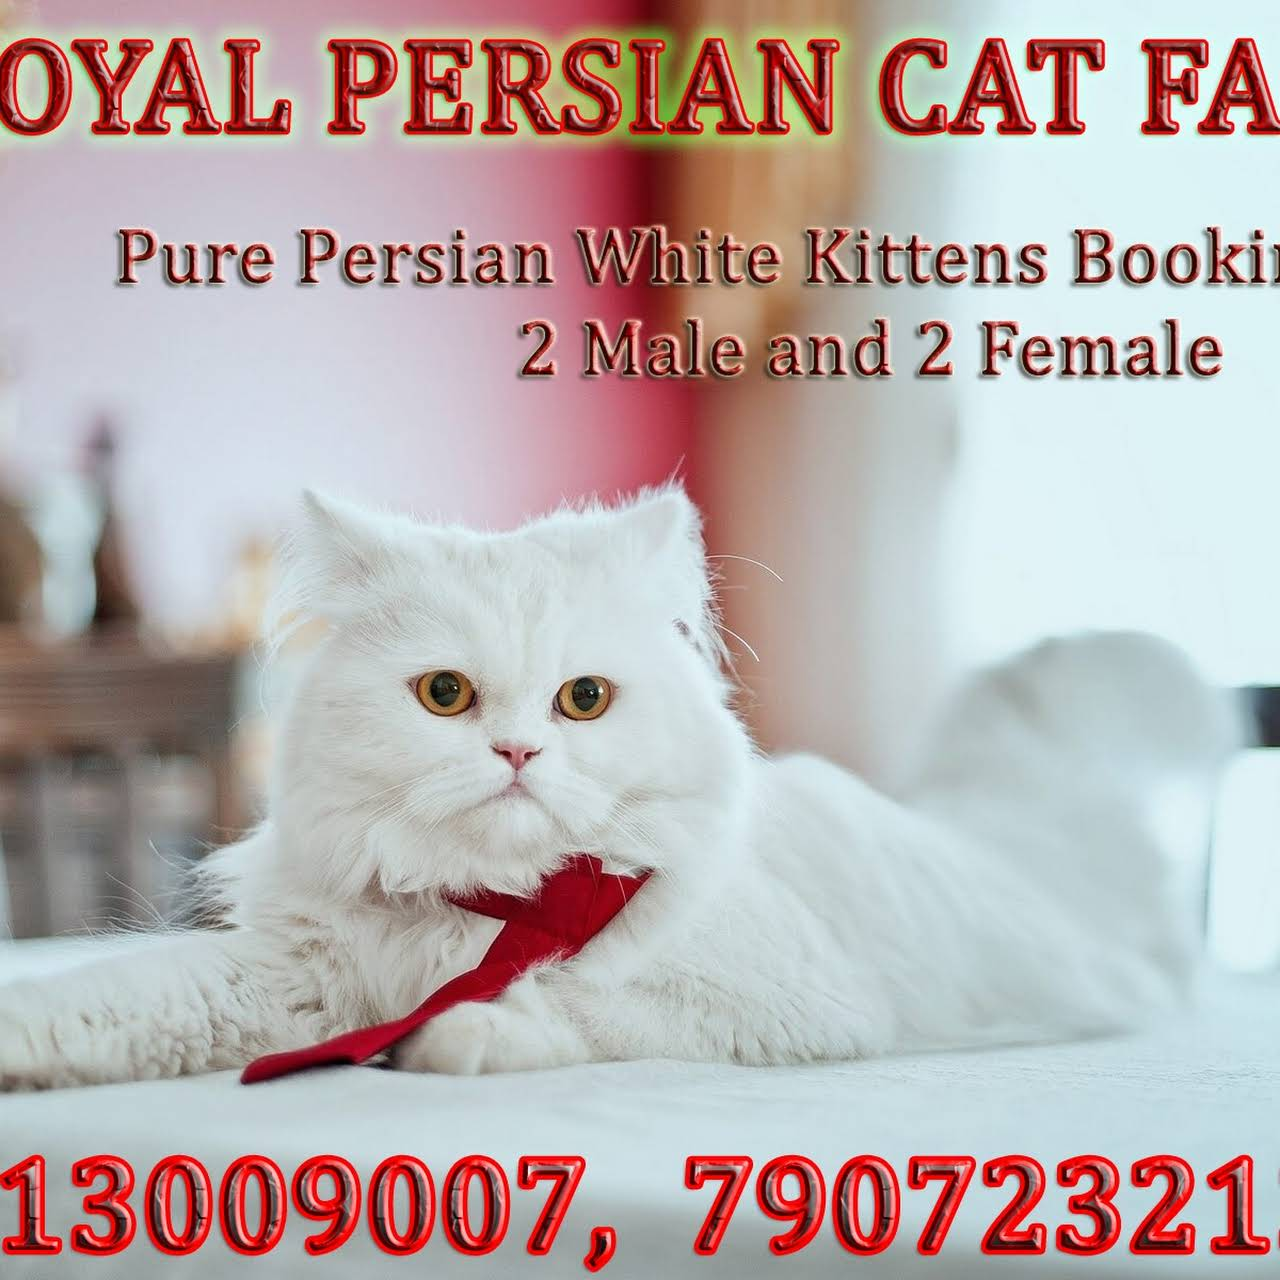 Royal Persian Cat Farm(Cattery) - High Quality Kittens in Low Price